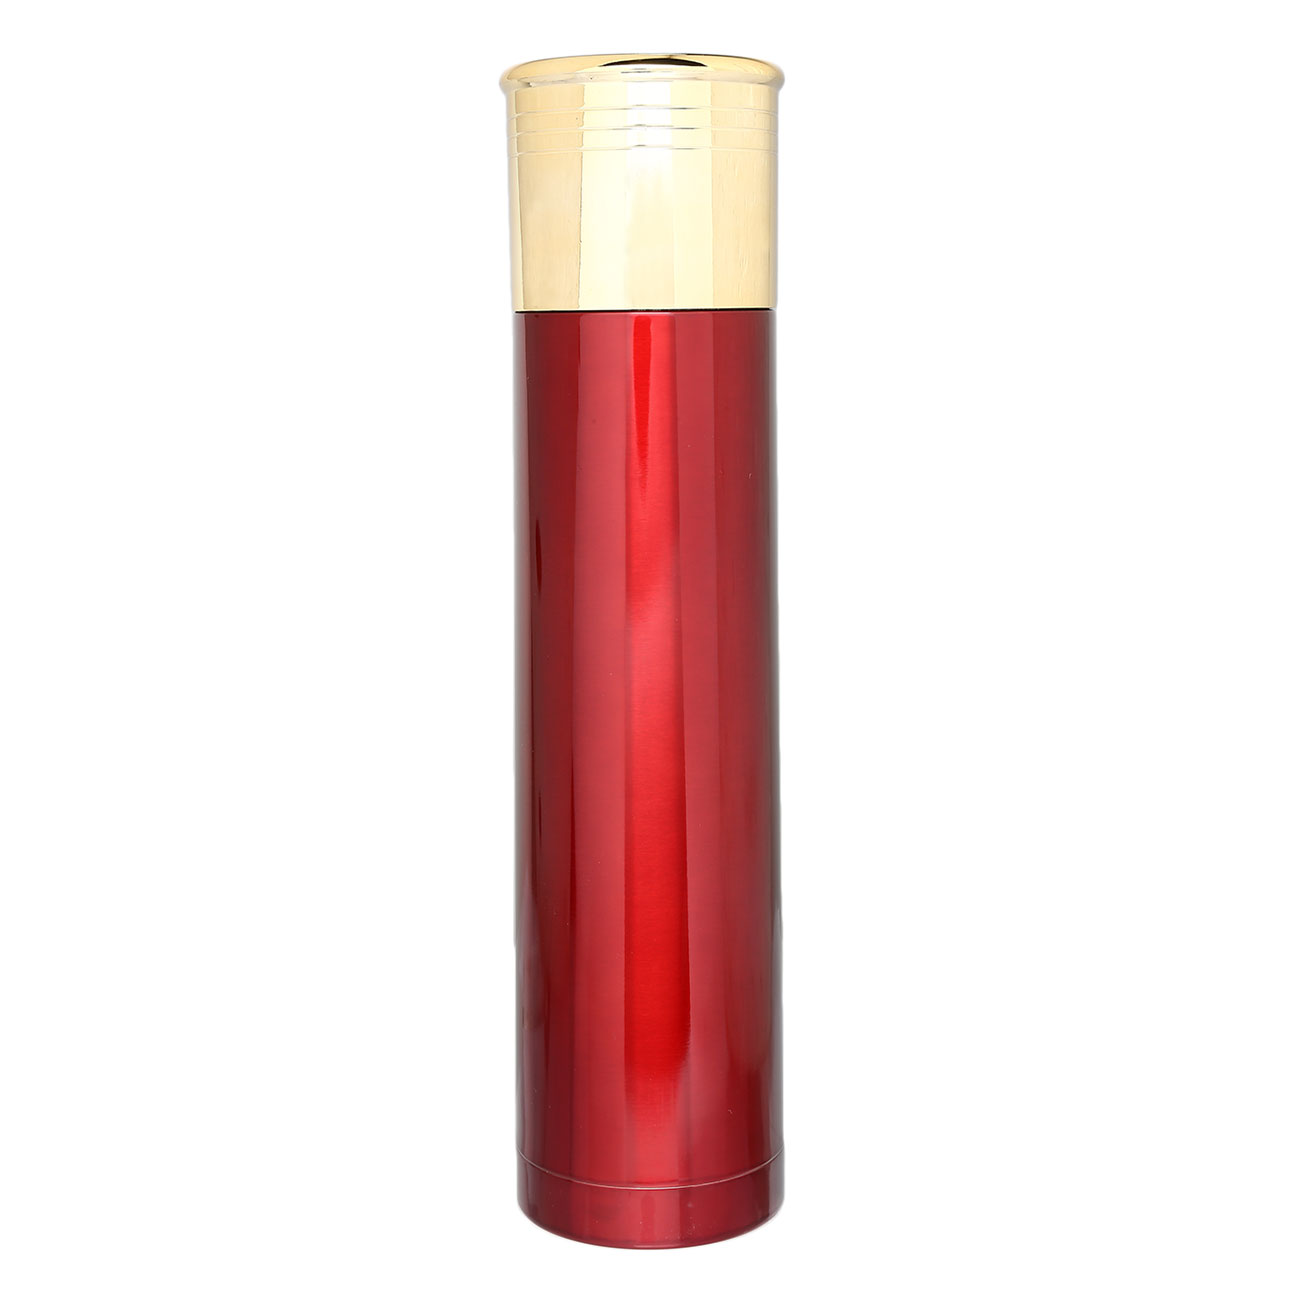 Thermoskanne Schrotpatrone 1000ml rot/gold 1